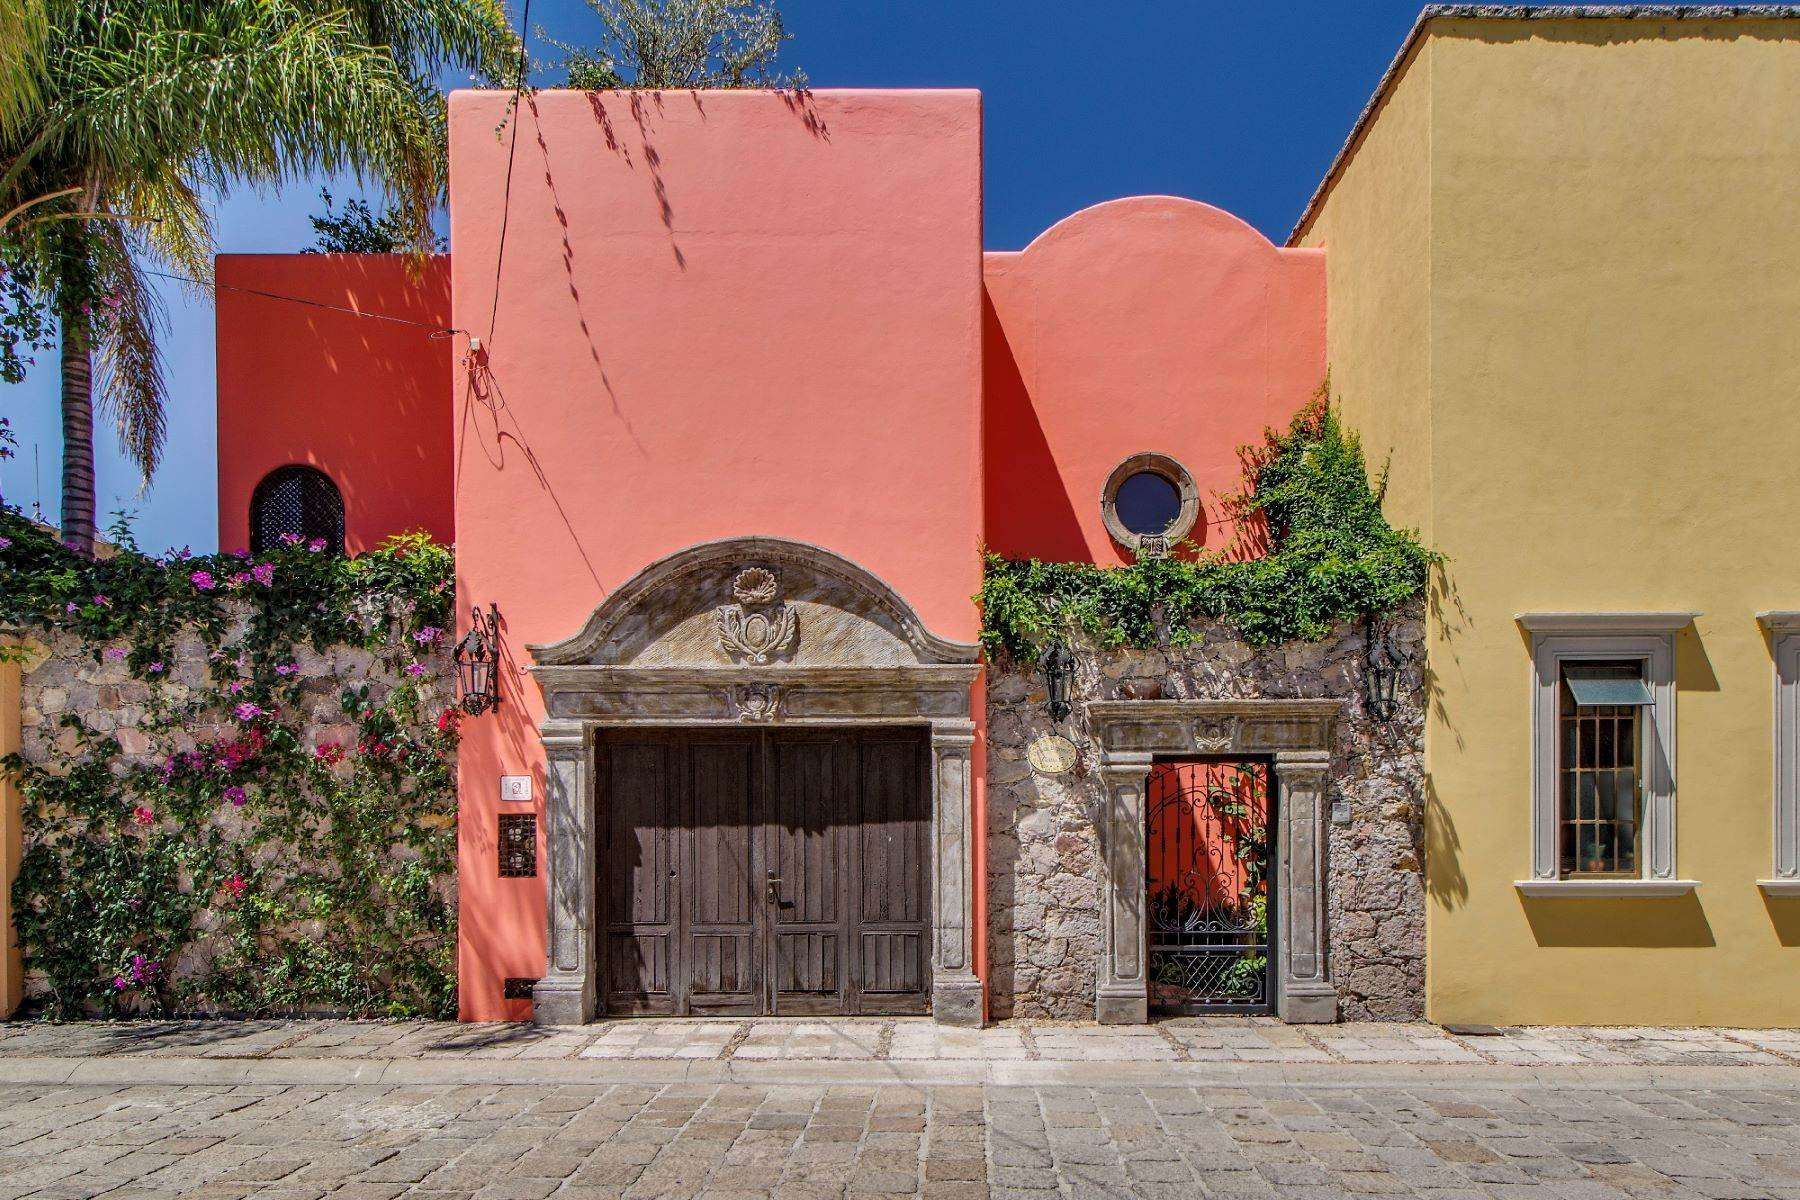 Property for Sale at Casa Cerrada de Grillo San Miguel De Allende, Guanajuato 37700 Mexico